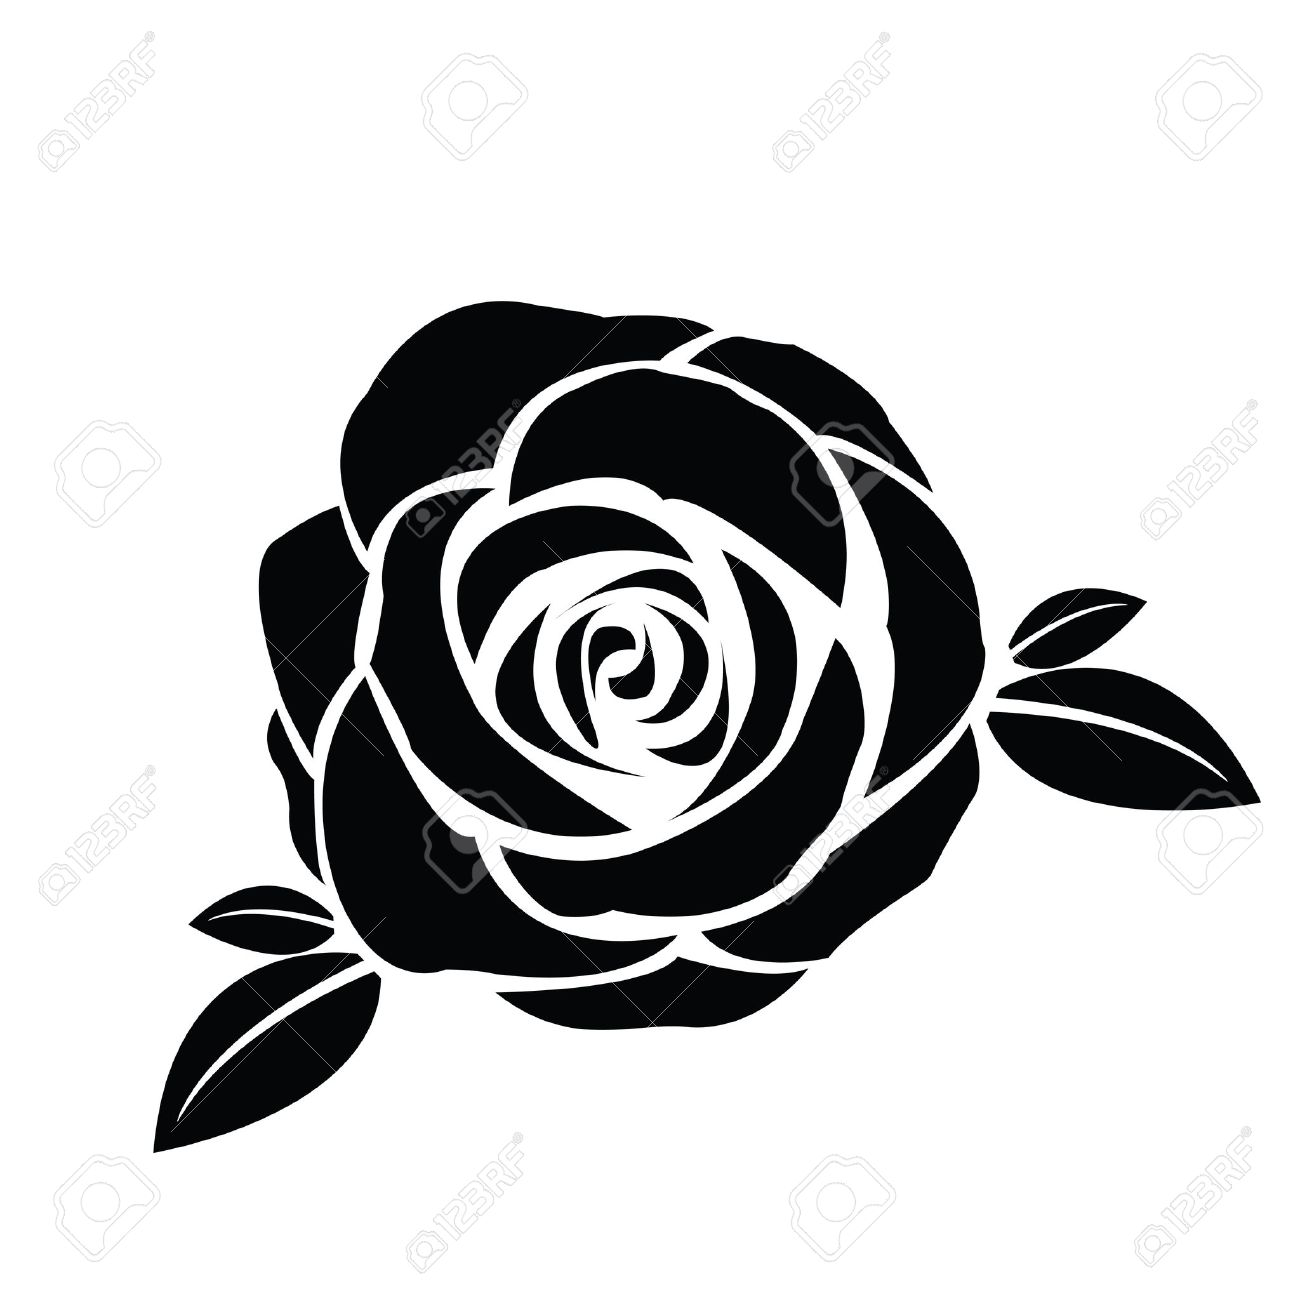 black silhouette of rose with leaves royalty free cliparts vectors rh 123rf com vector rose art vector rose art